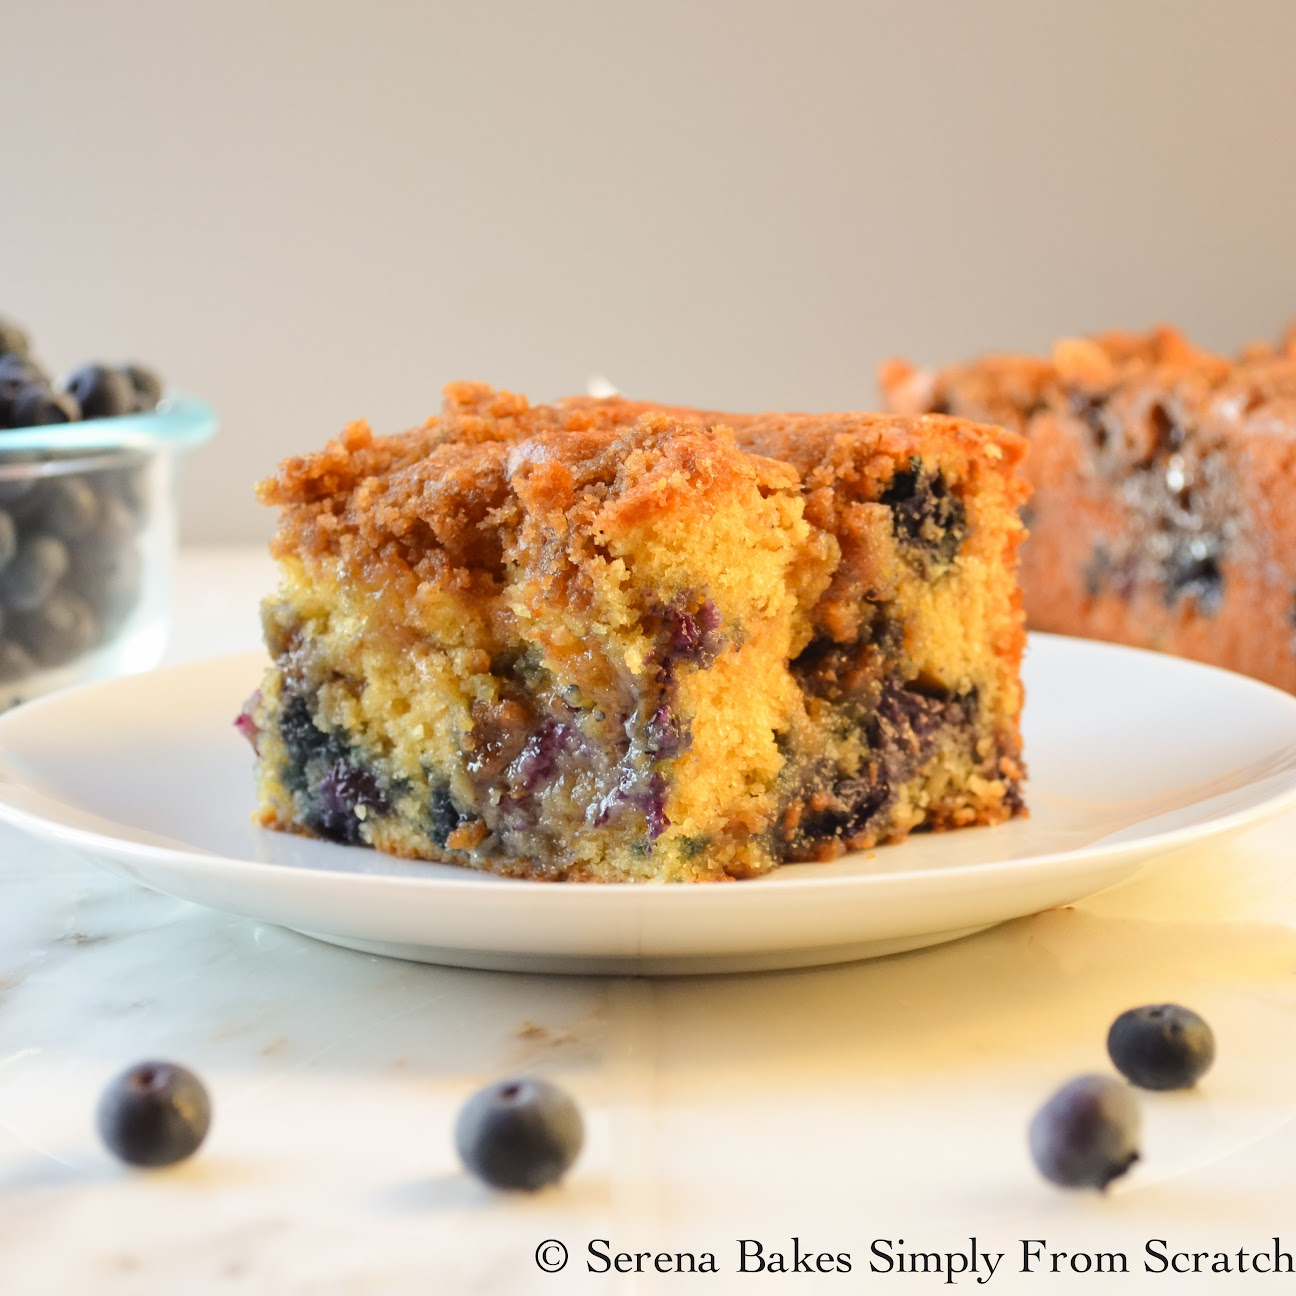 #8 Most Viewed Recipe 2014 serenabakessimplyfromscratch.com Blueberry Cinnamon Swirl Crumb Coffeecake.